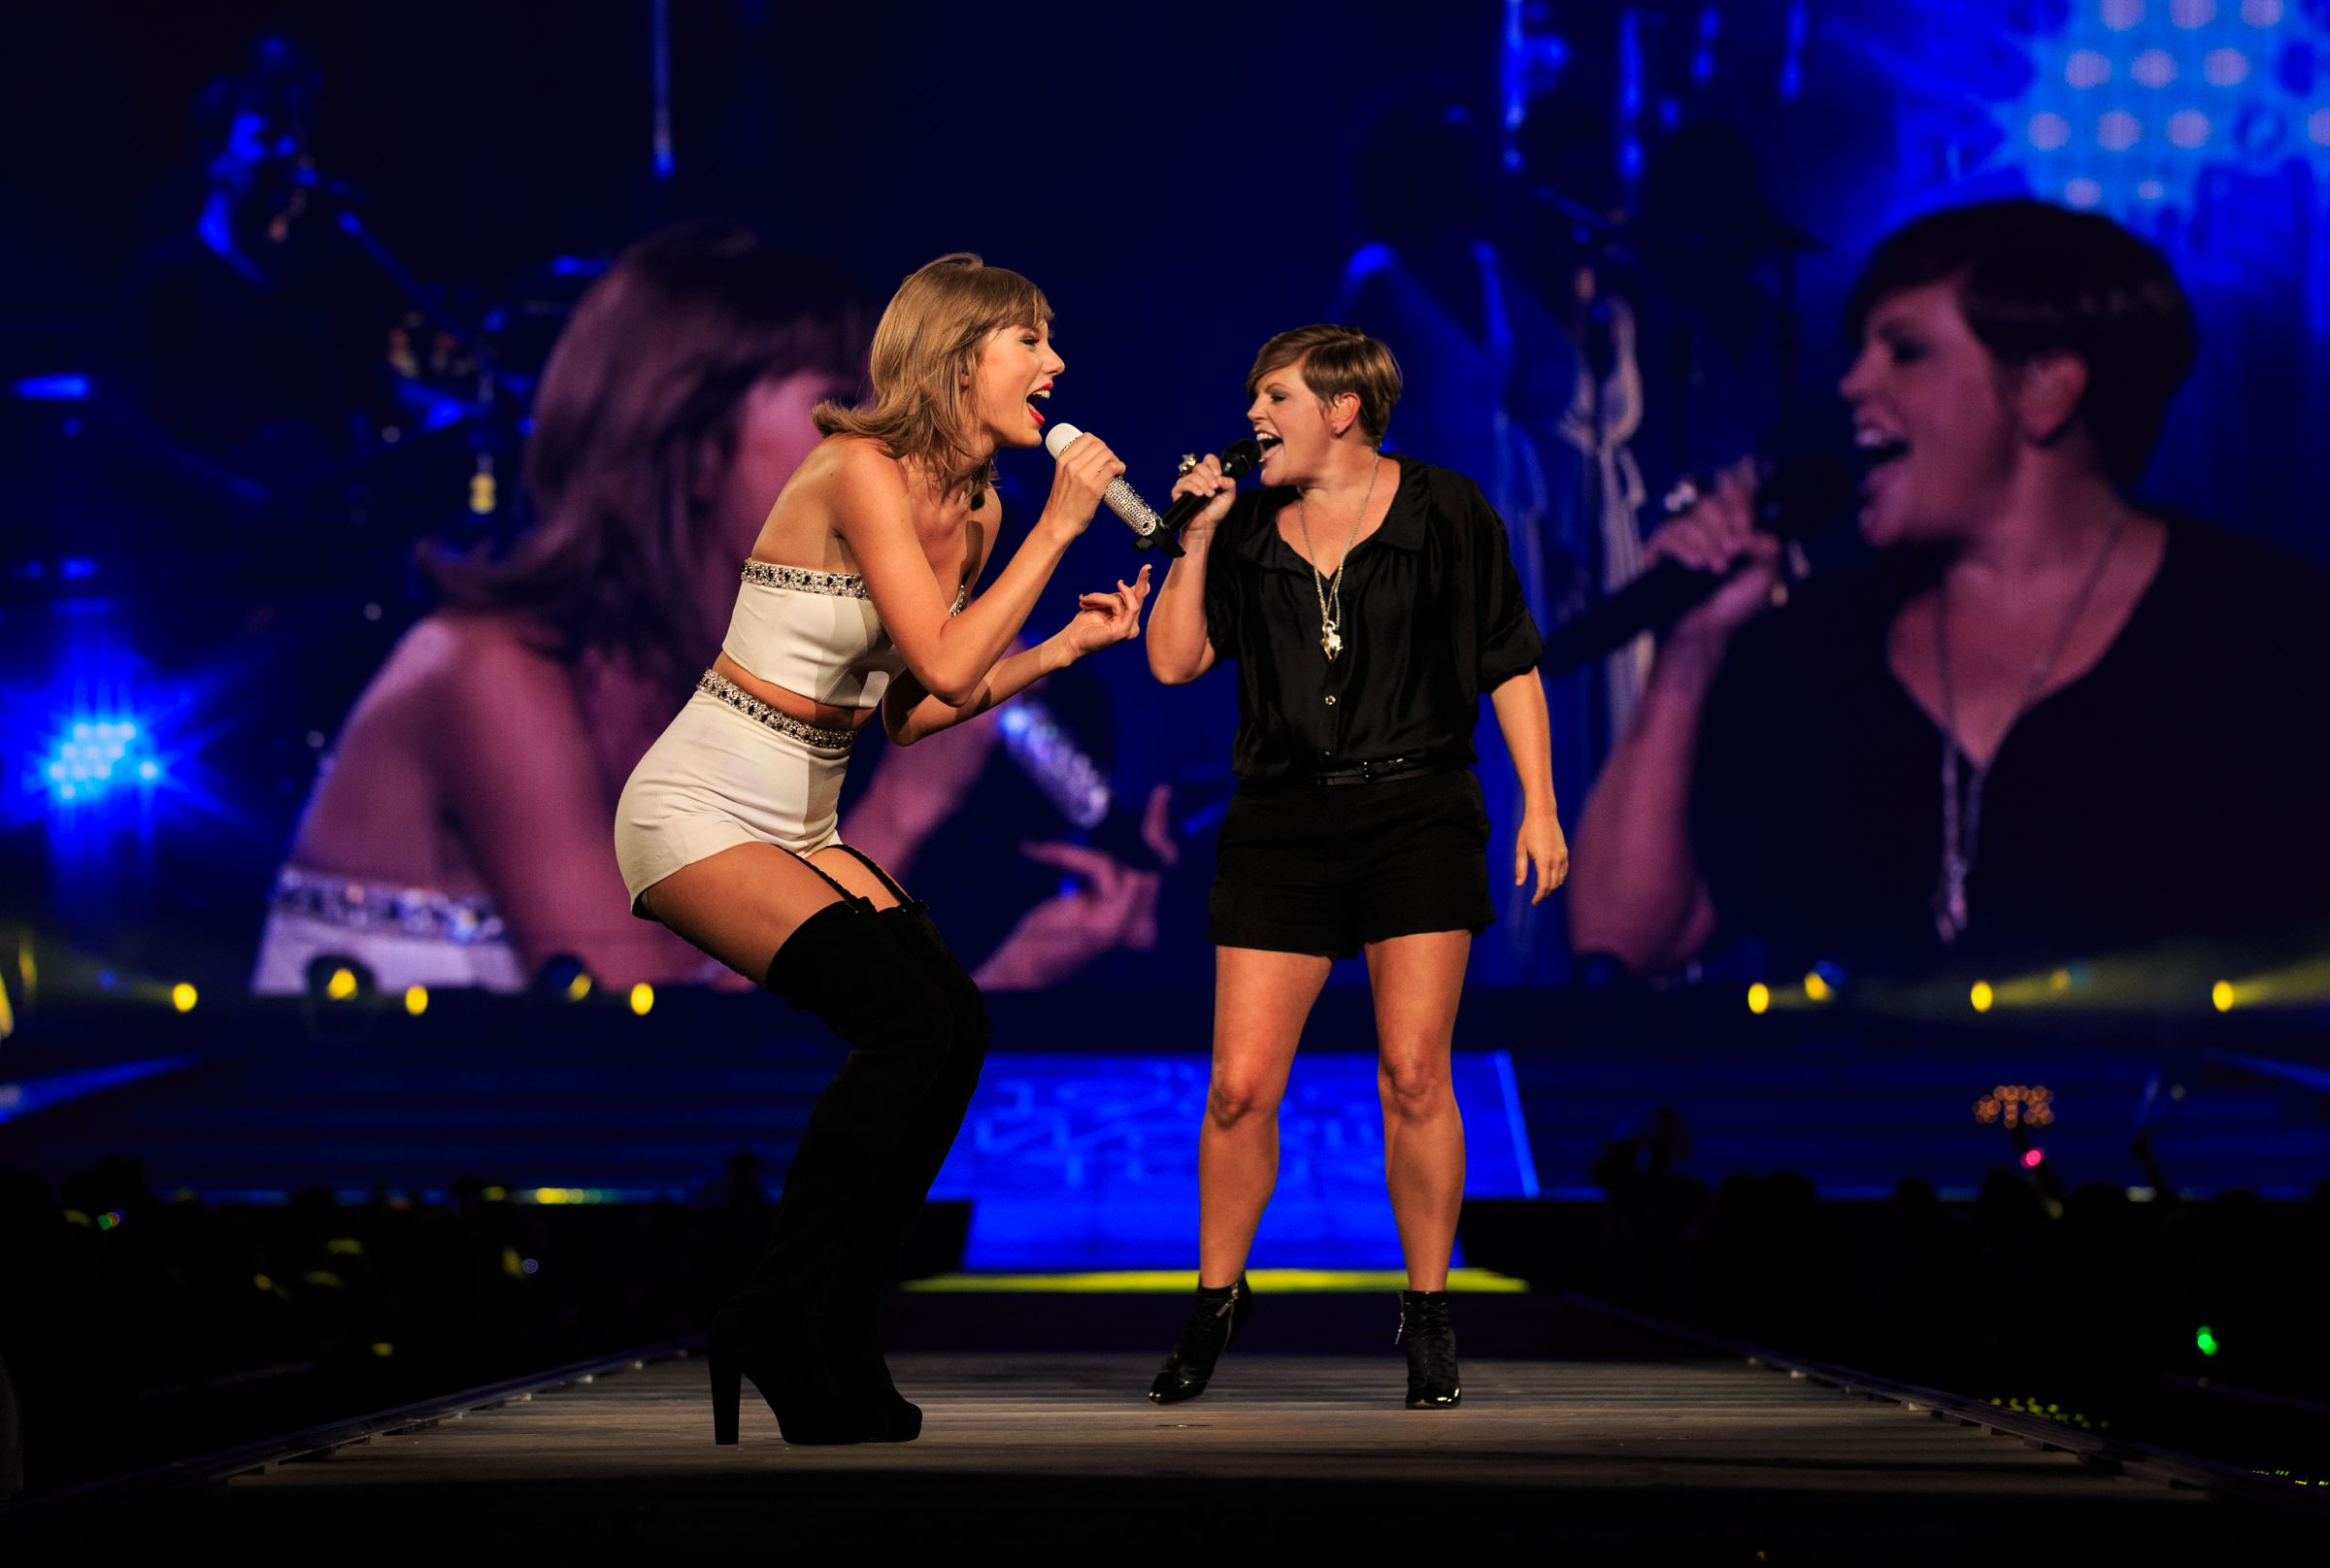 Taylor Swift and the Dixie Chicks Release the Heartbreaking Song 'Soon You'll Get Better'